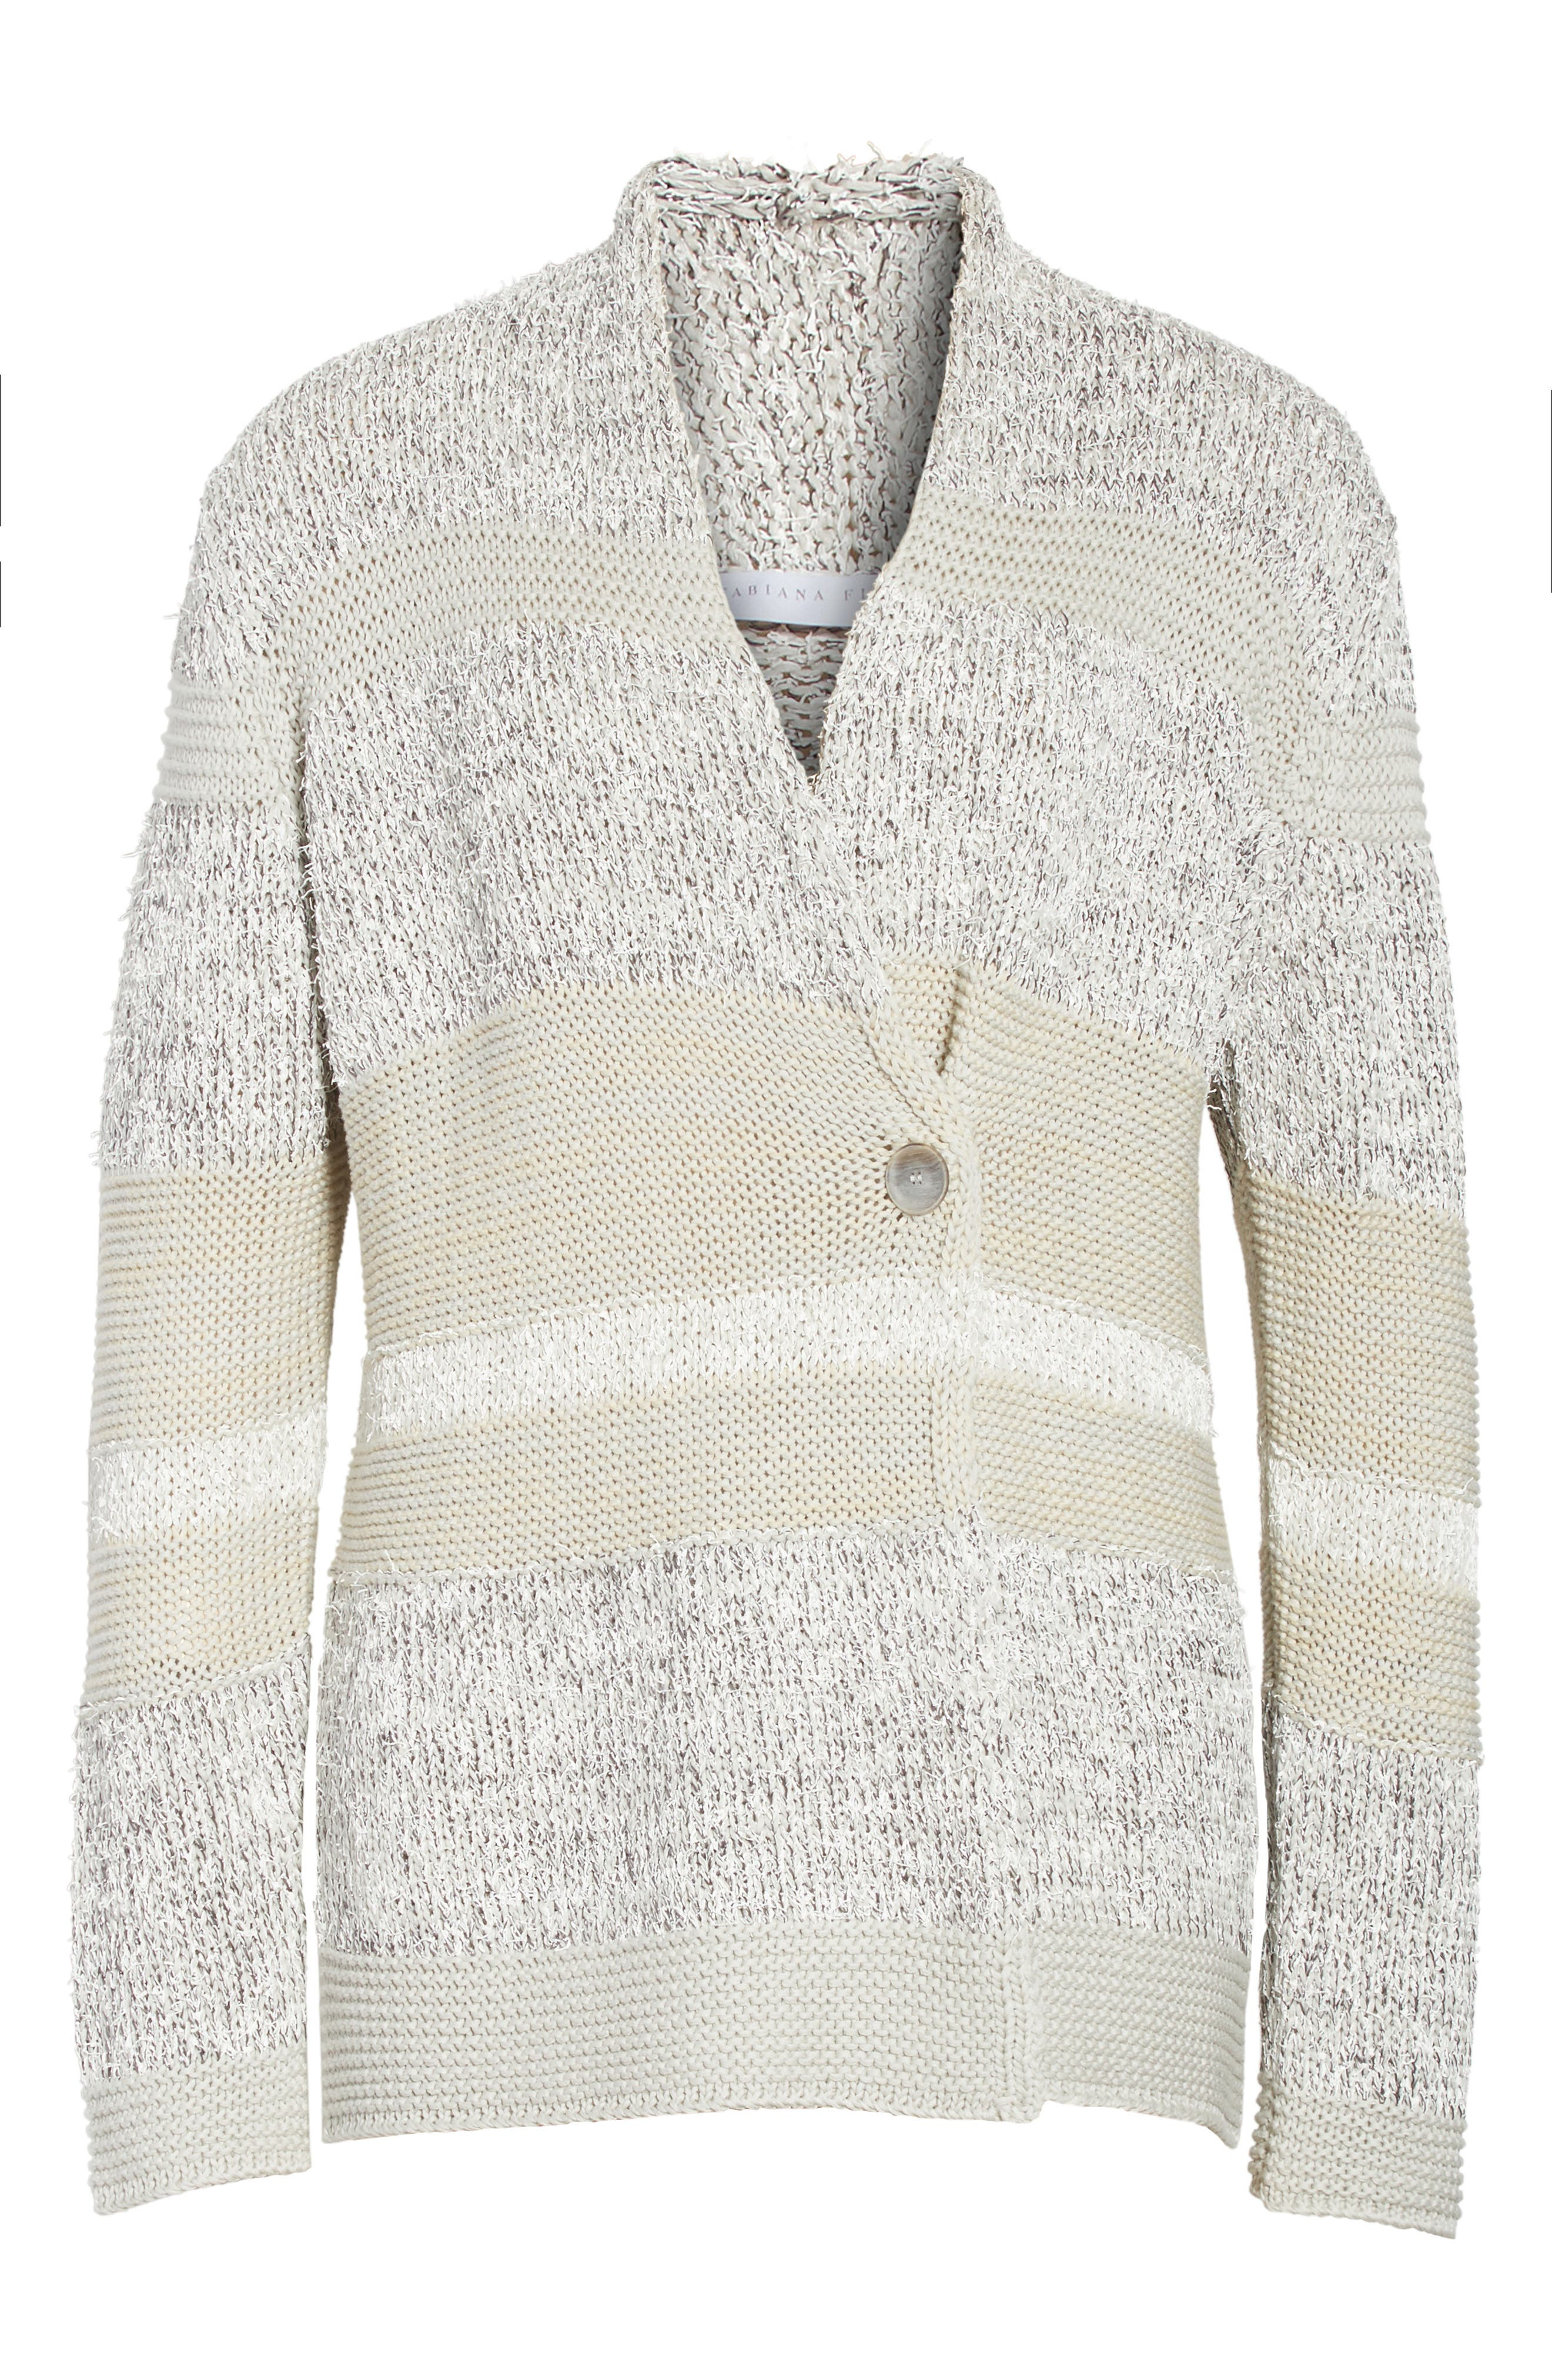 Stripe Metallic Knit Cardigan,                             Alternate thumbnail 6, color,